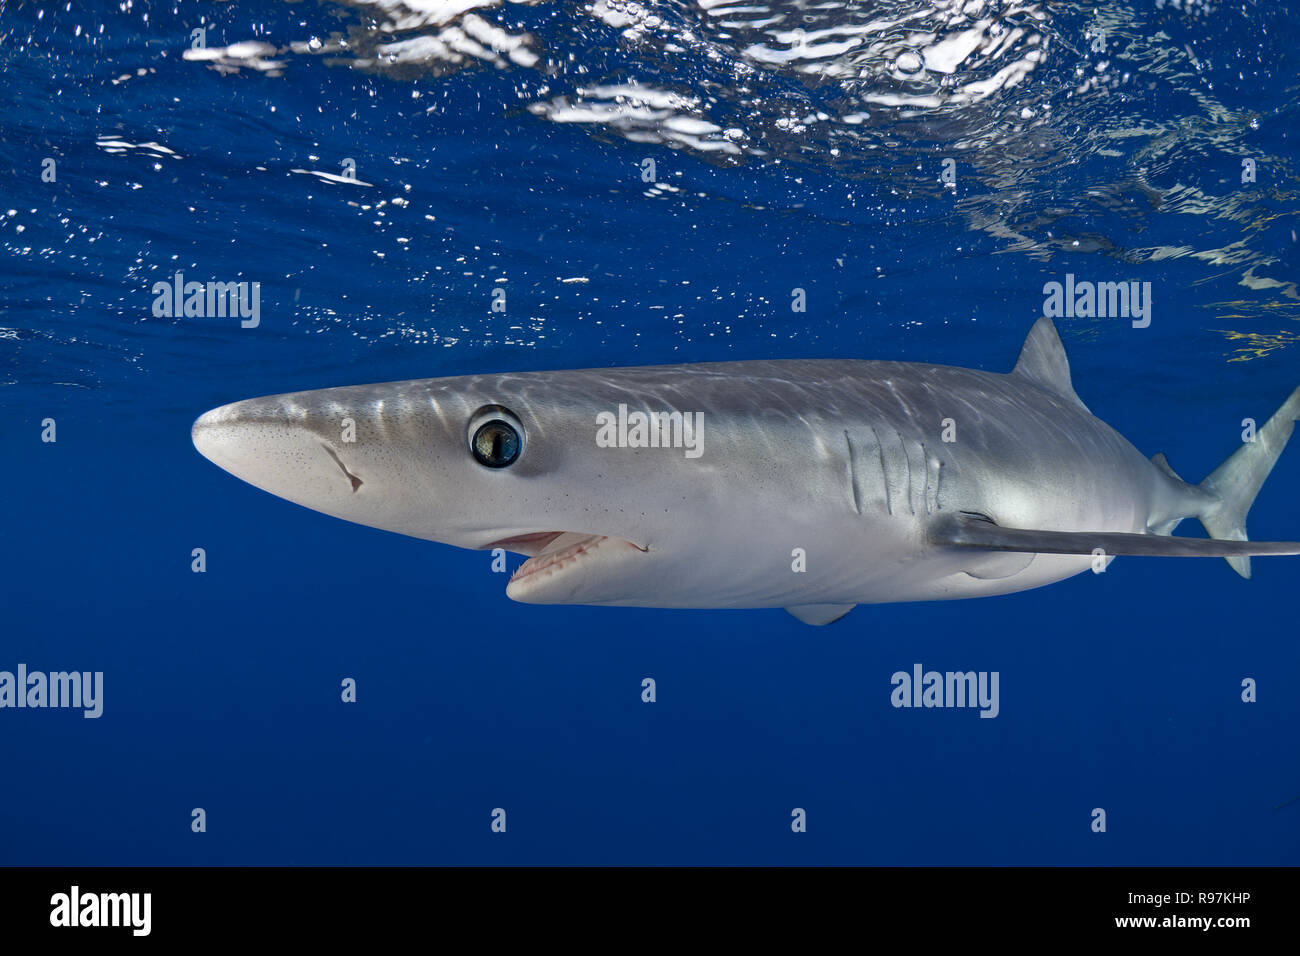 Scuba diver and Blue shark (Prionace glauca) swimming in blue water, Faial, Azores, Portugal Stock Photo